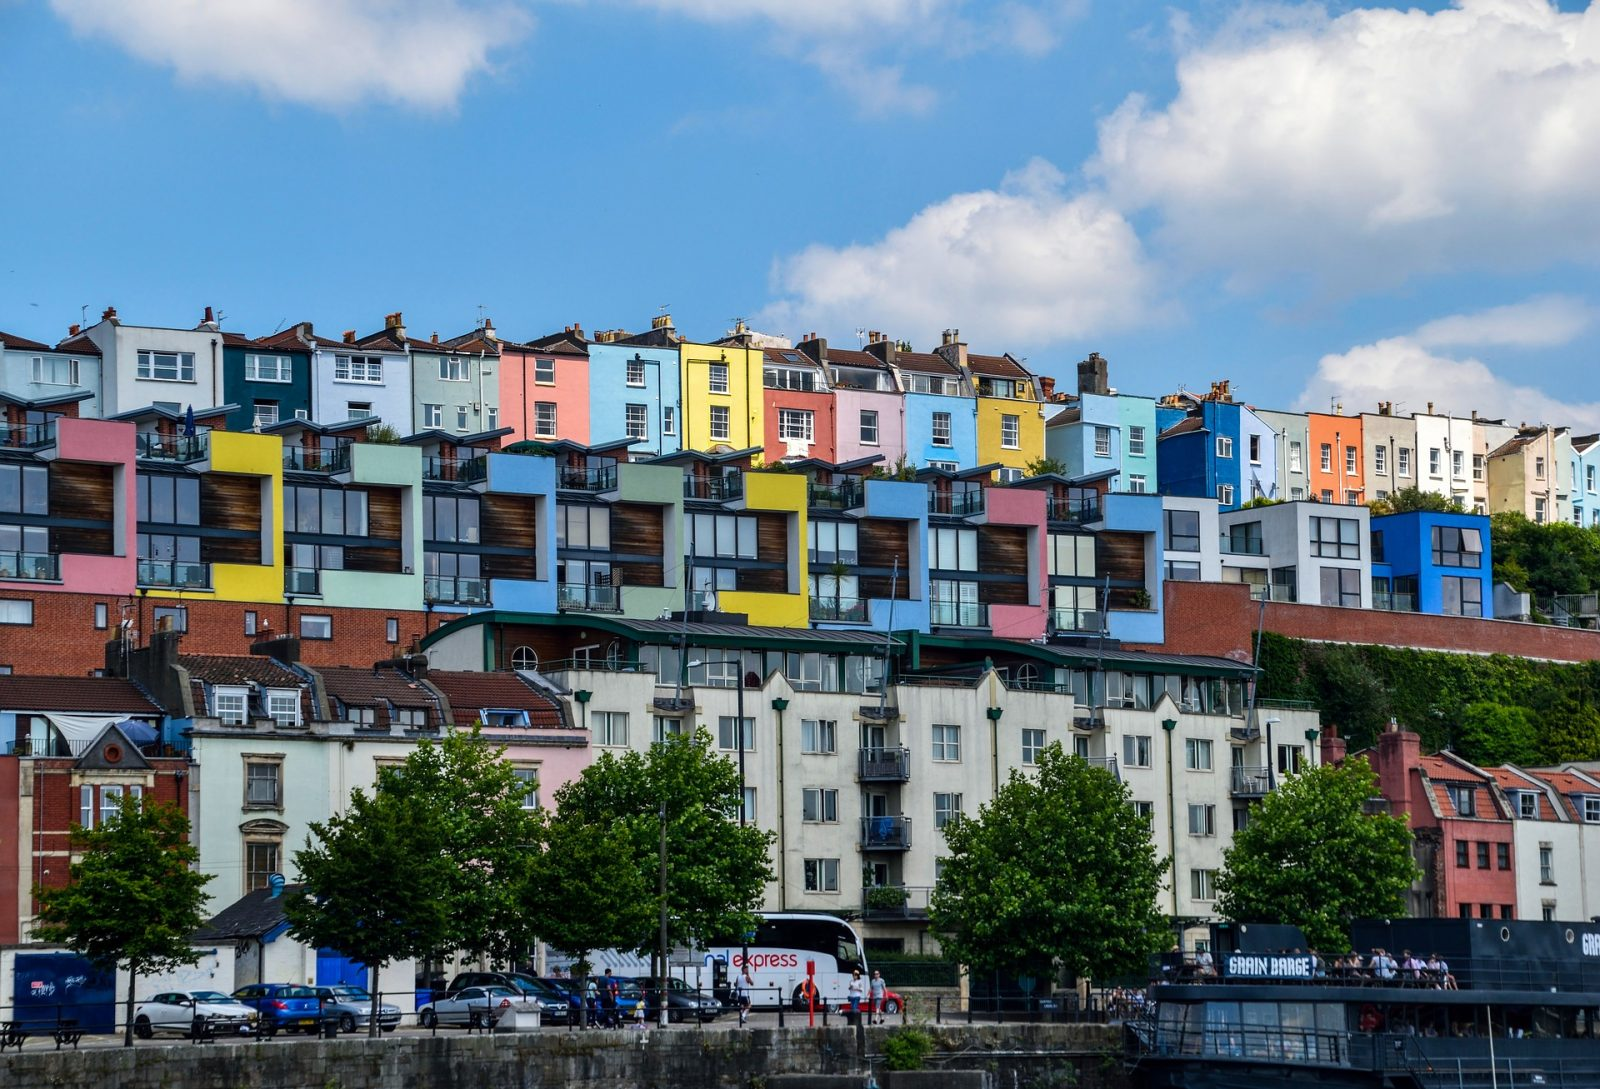 Bristol colourful houses